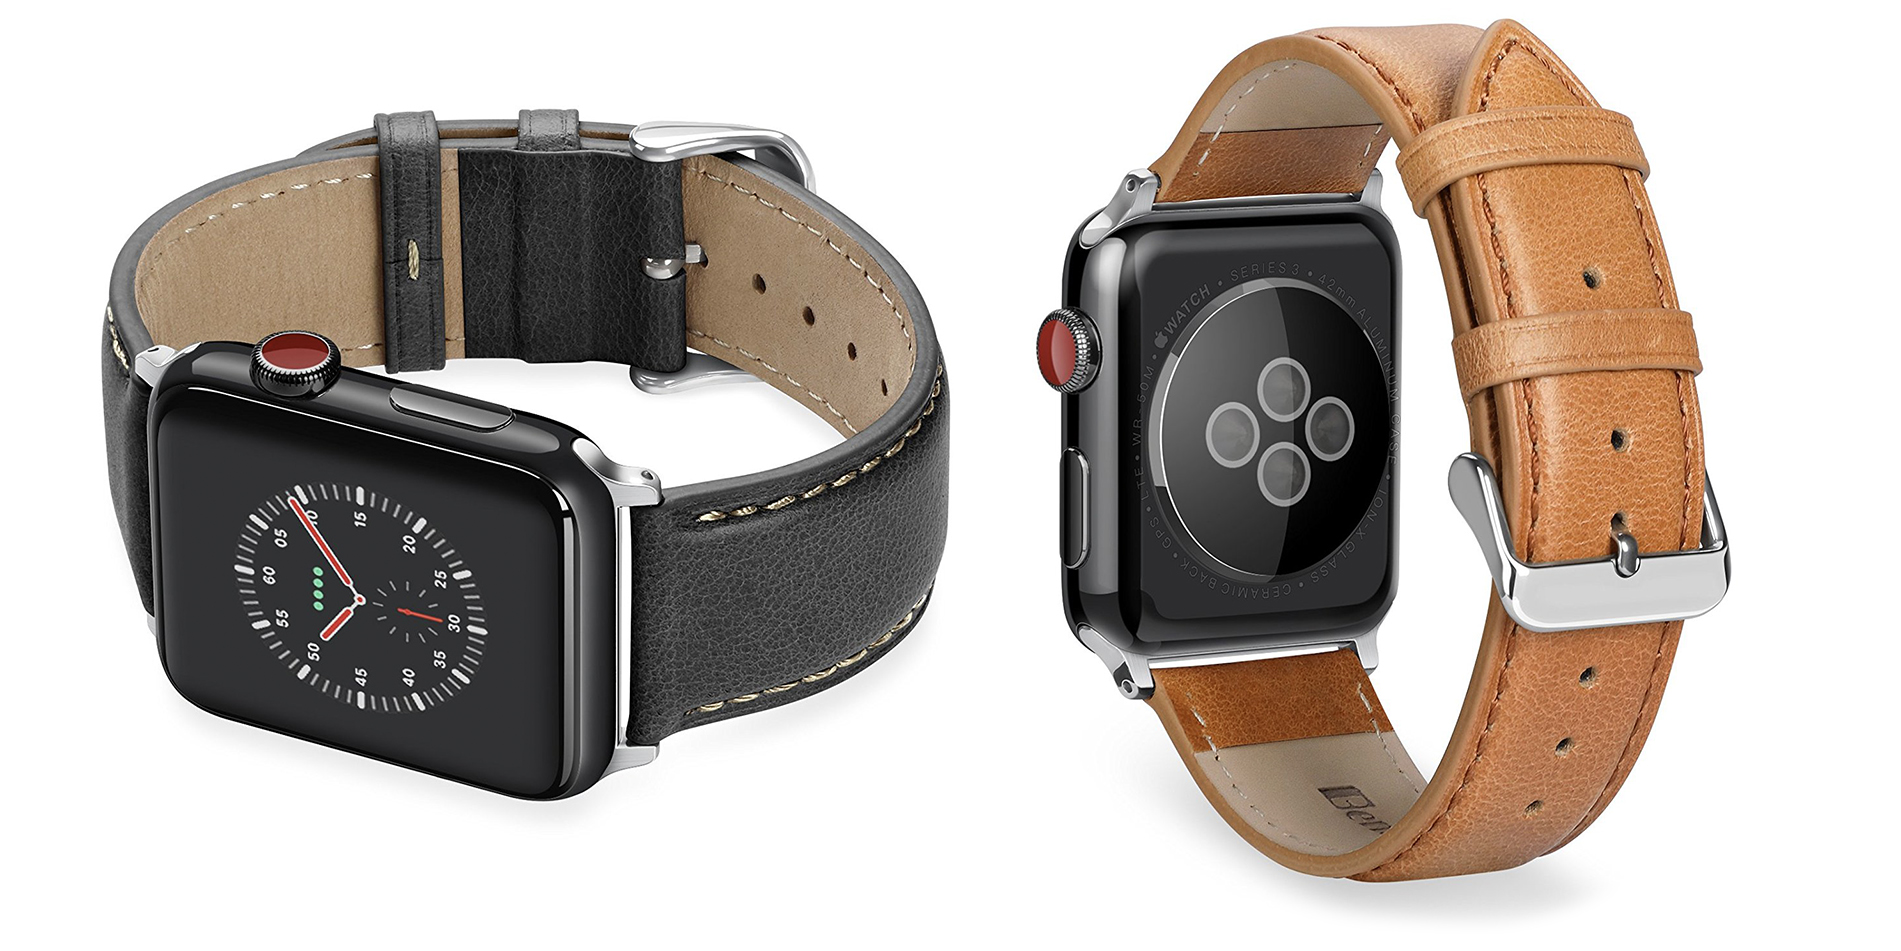 Just $8 Prime shipped gets you a new leather Apple Watch band, more from $5